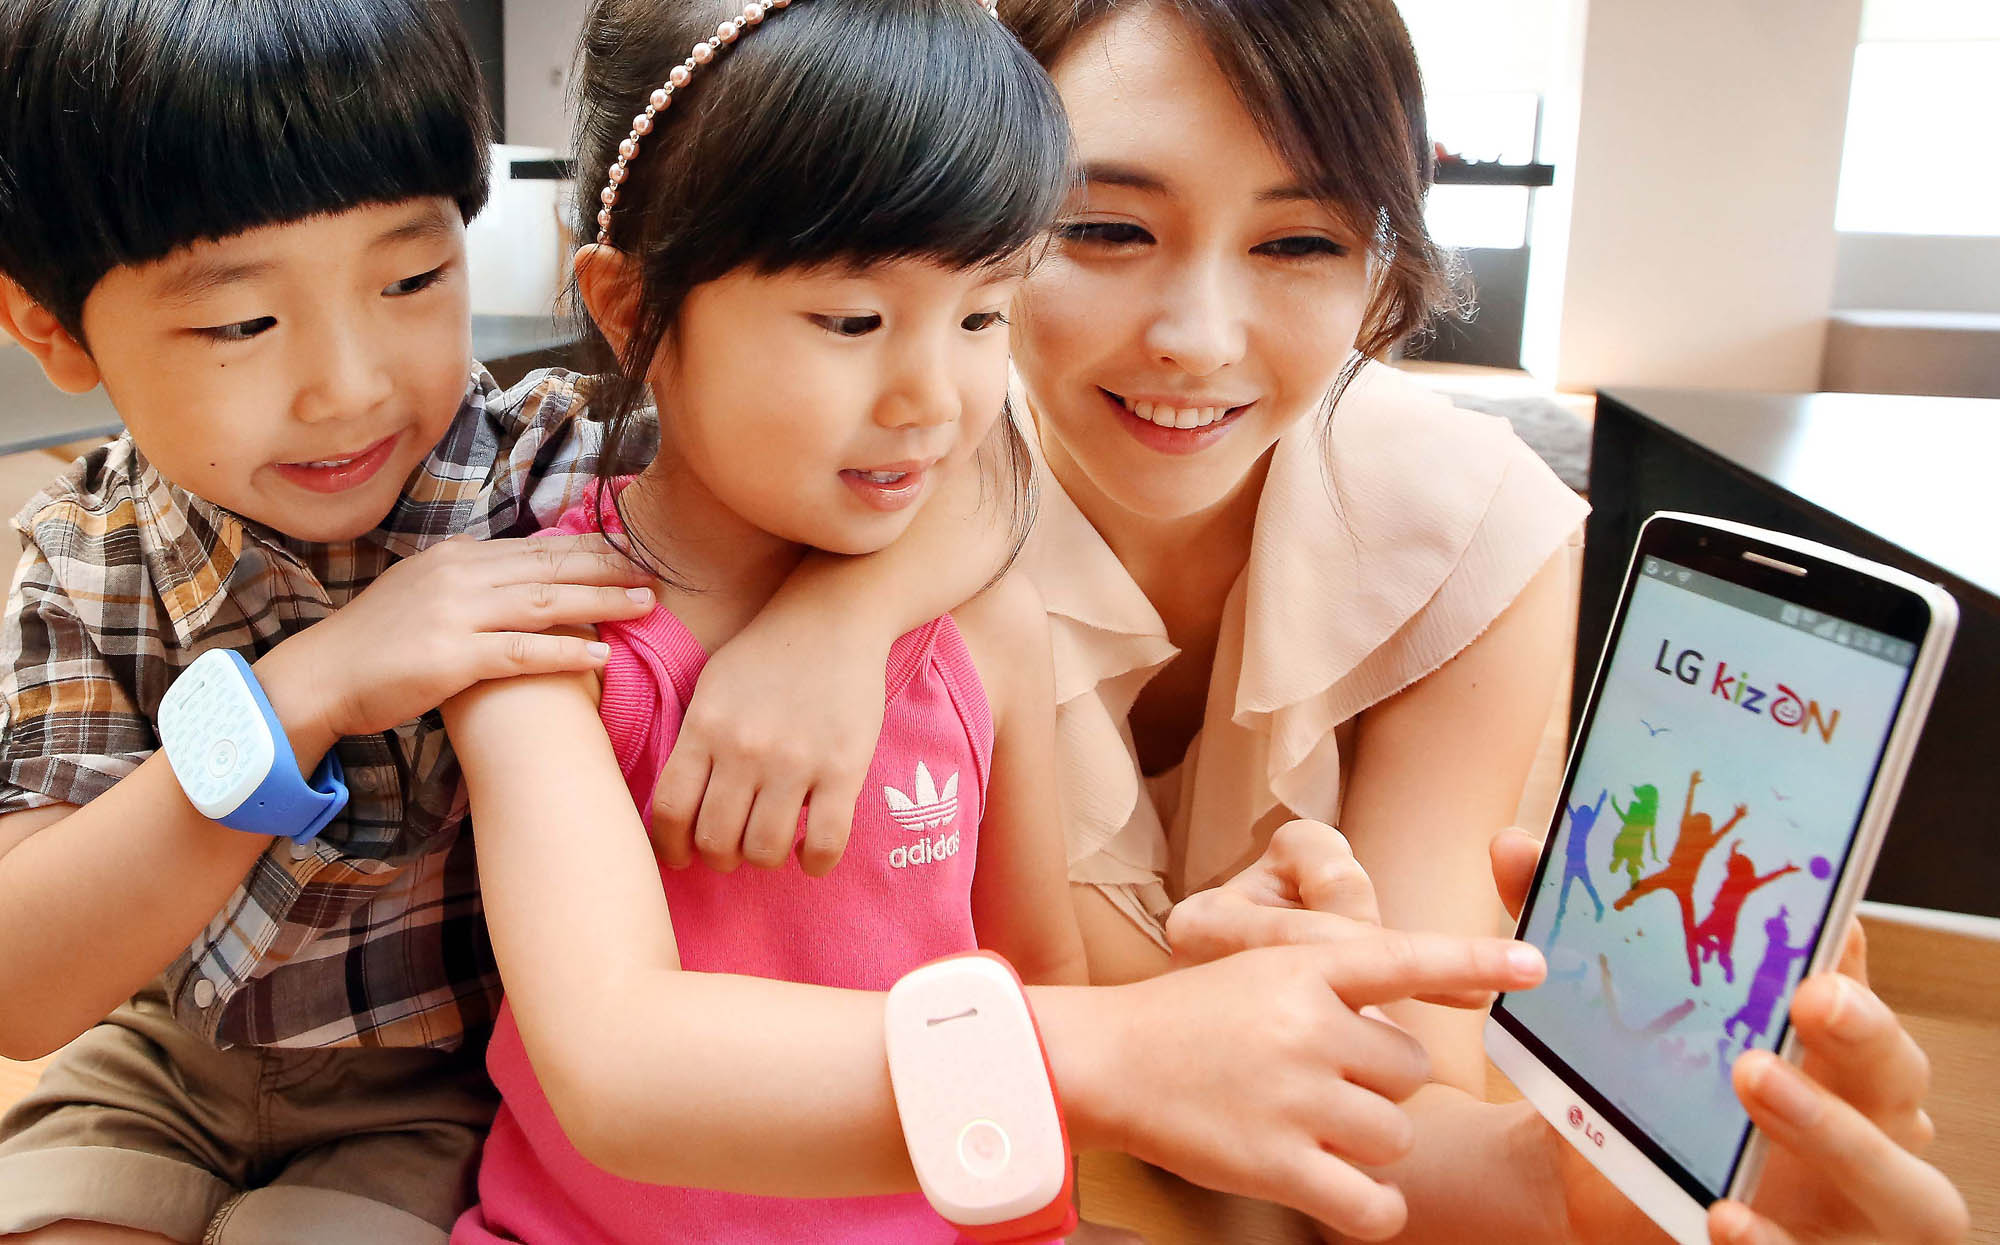 Two kid models wearing LG KizONS and a female model are trying to link the handsets with LG G3